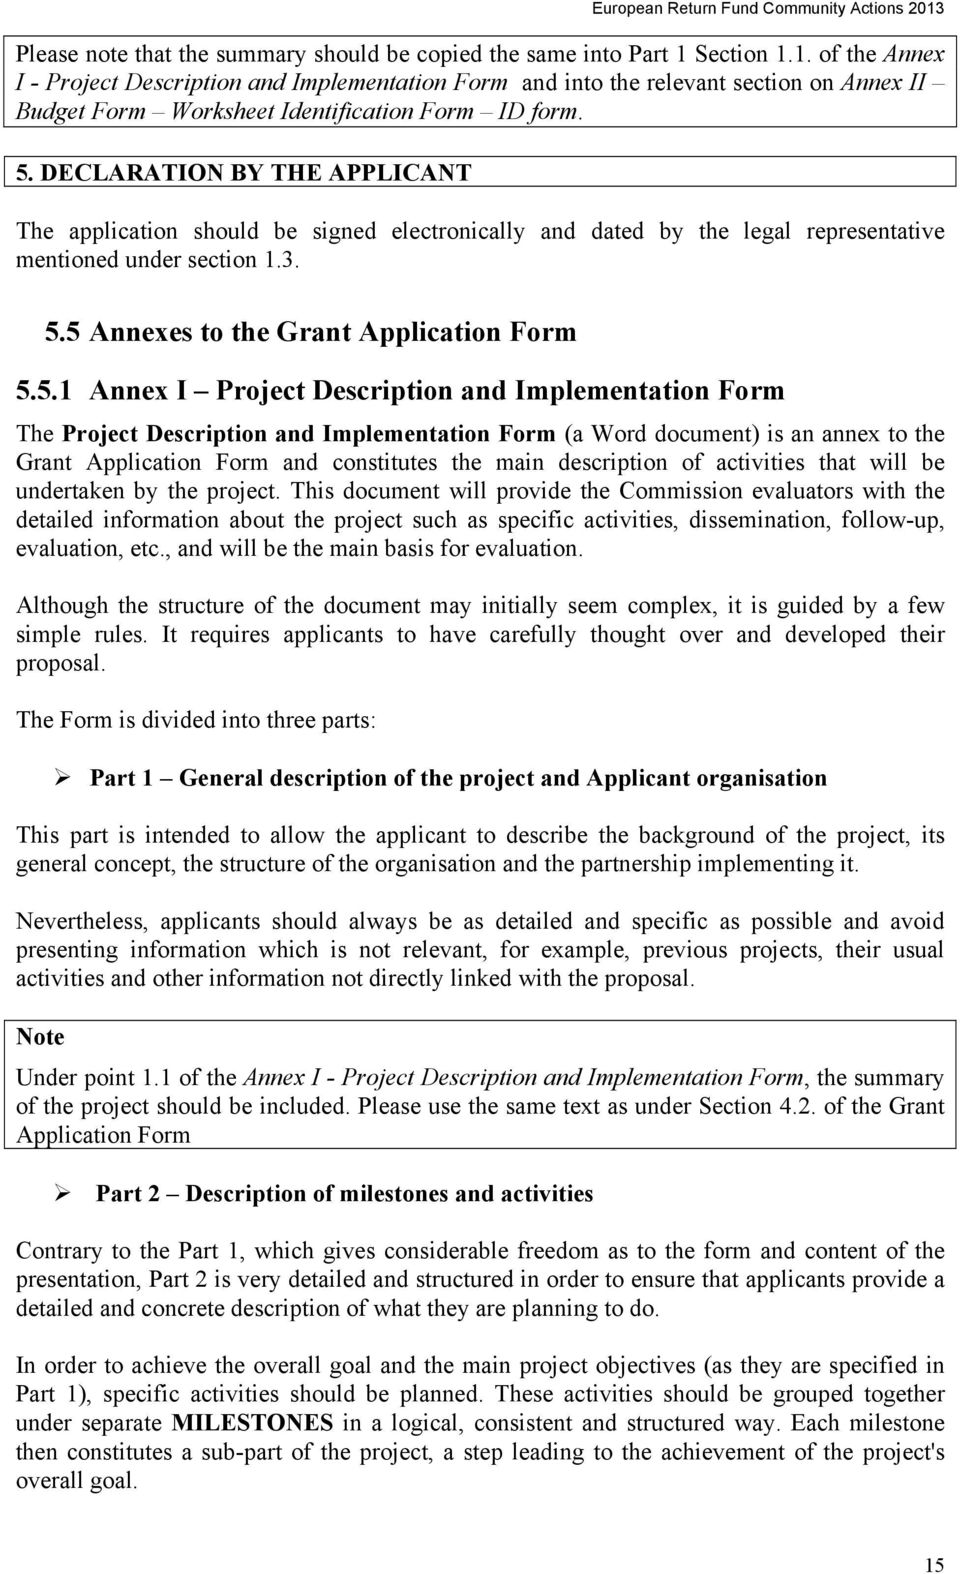 DECLARATION BY THE APPLICANT The application should be signed electronically and dated by the legal representative mentioned under section 1.3. 5.